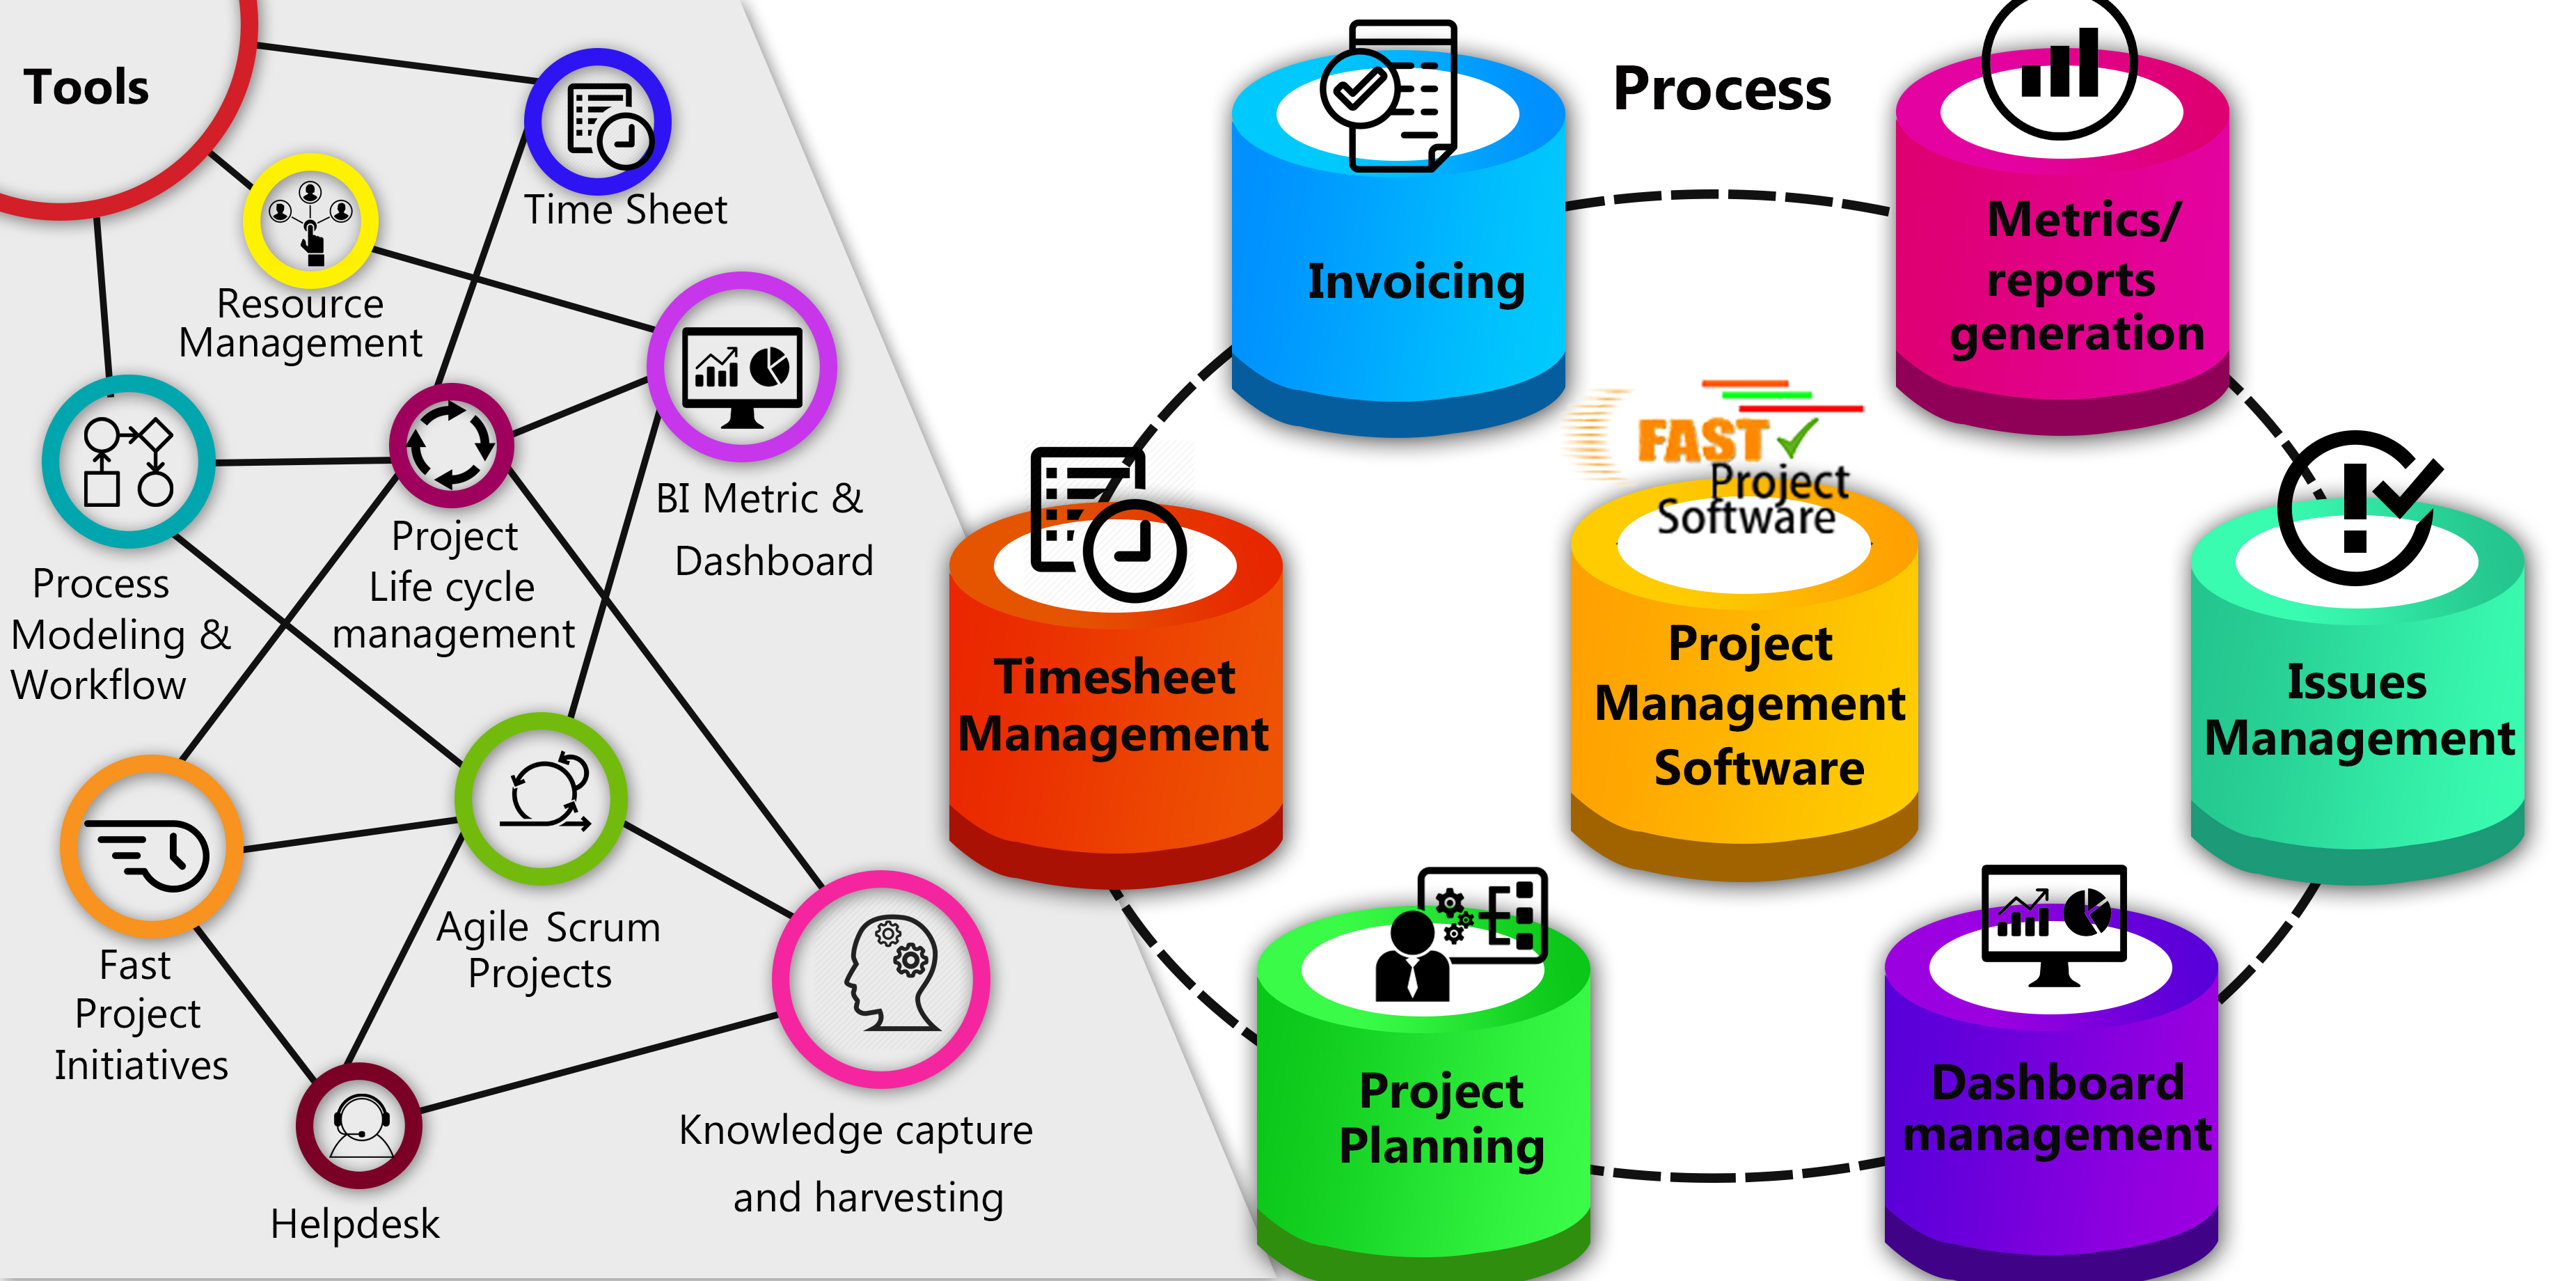 Project management tools and process